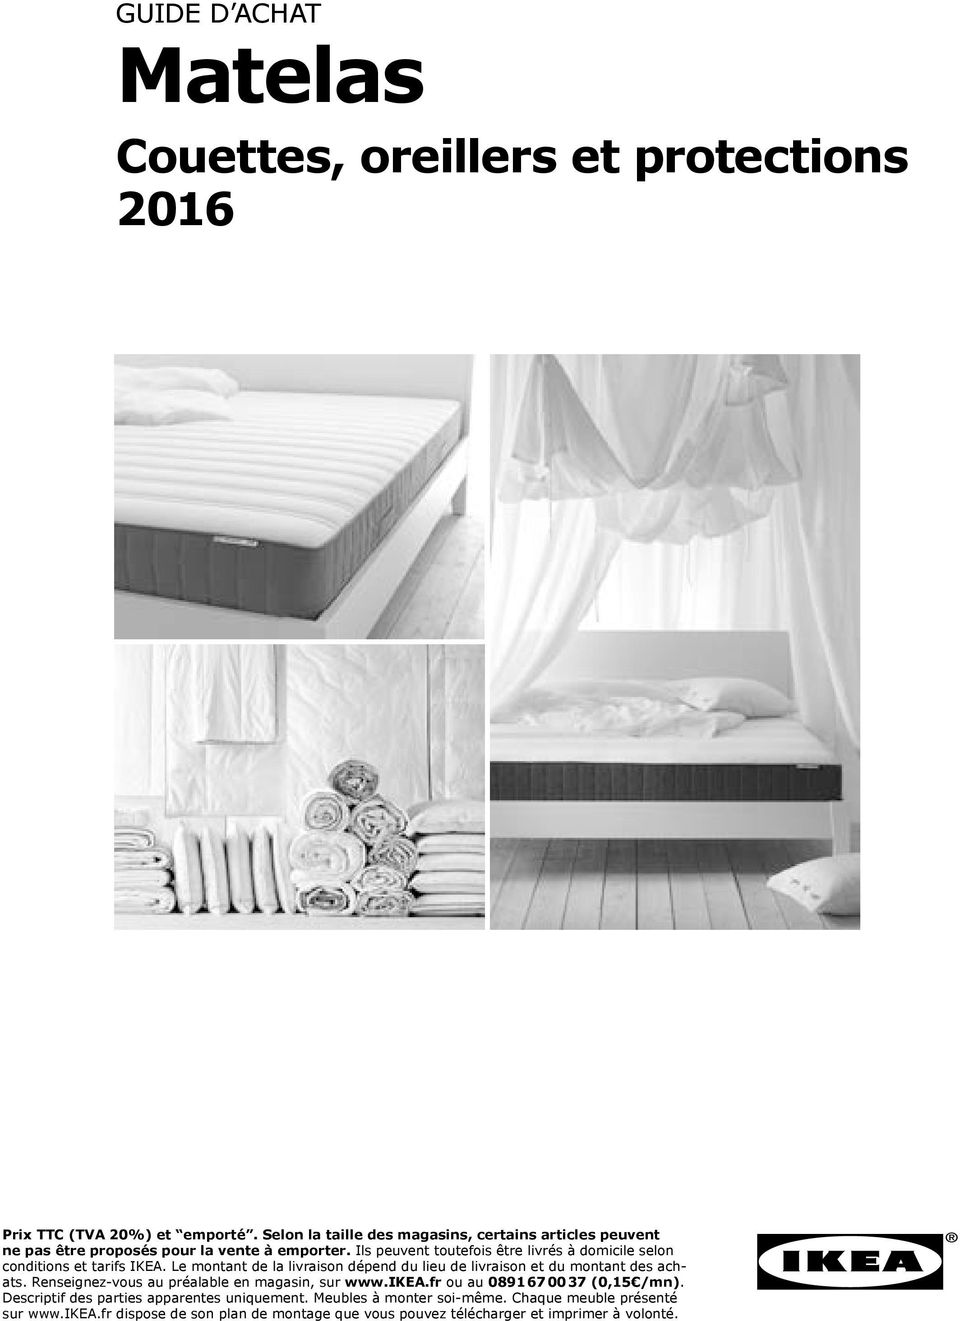 matelas couettes oreillers et protections 2016 guide d achat pdf. Black Bedroom Furniture Sets. Home Design Ideas